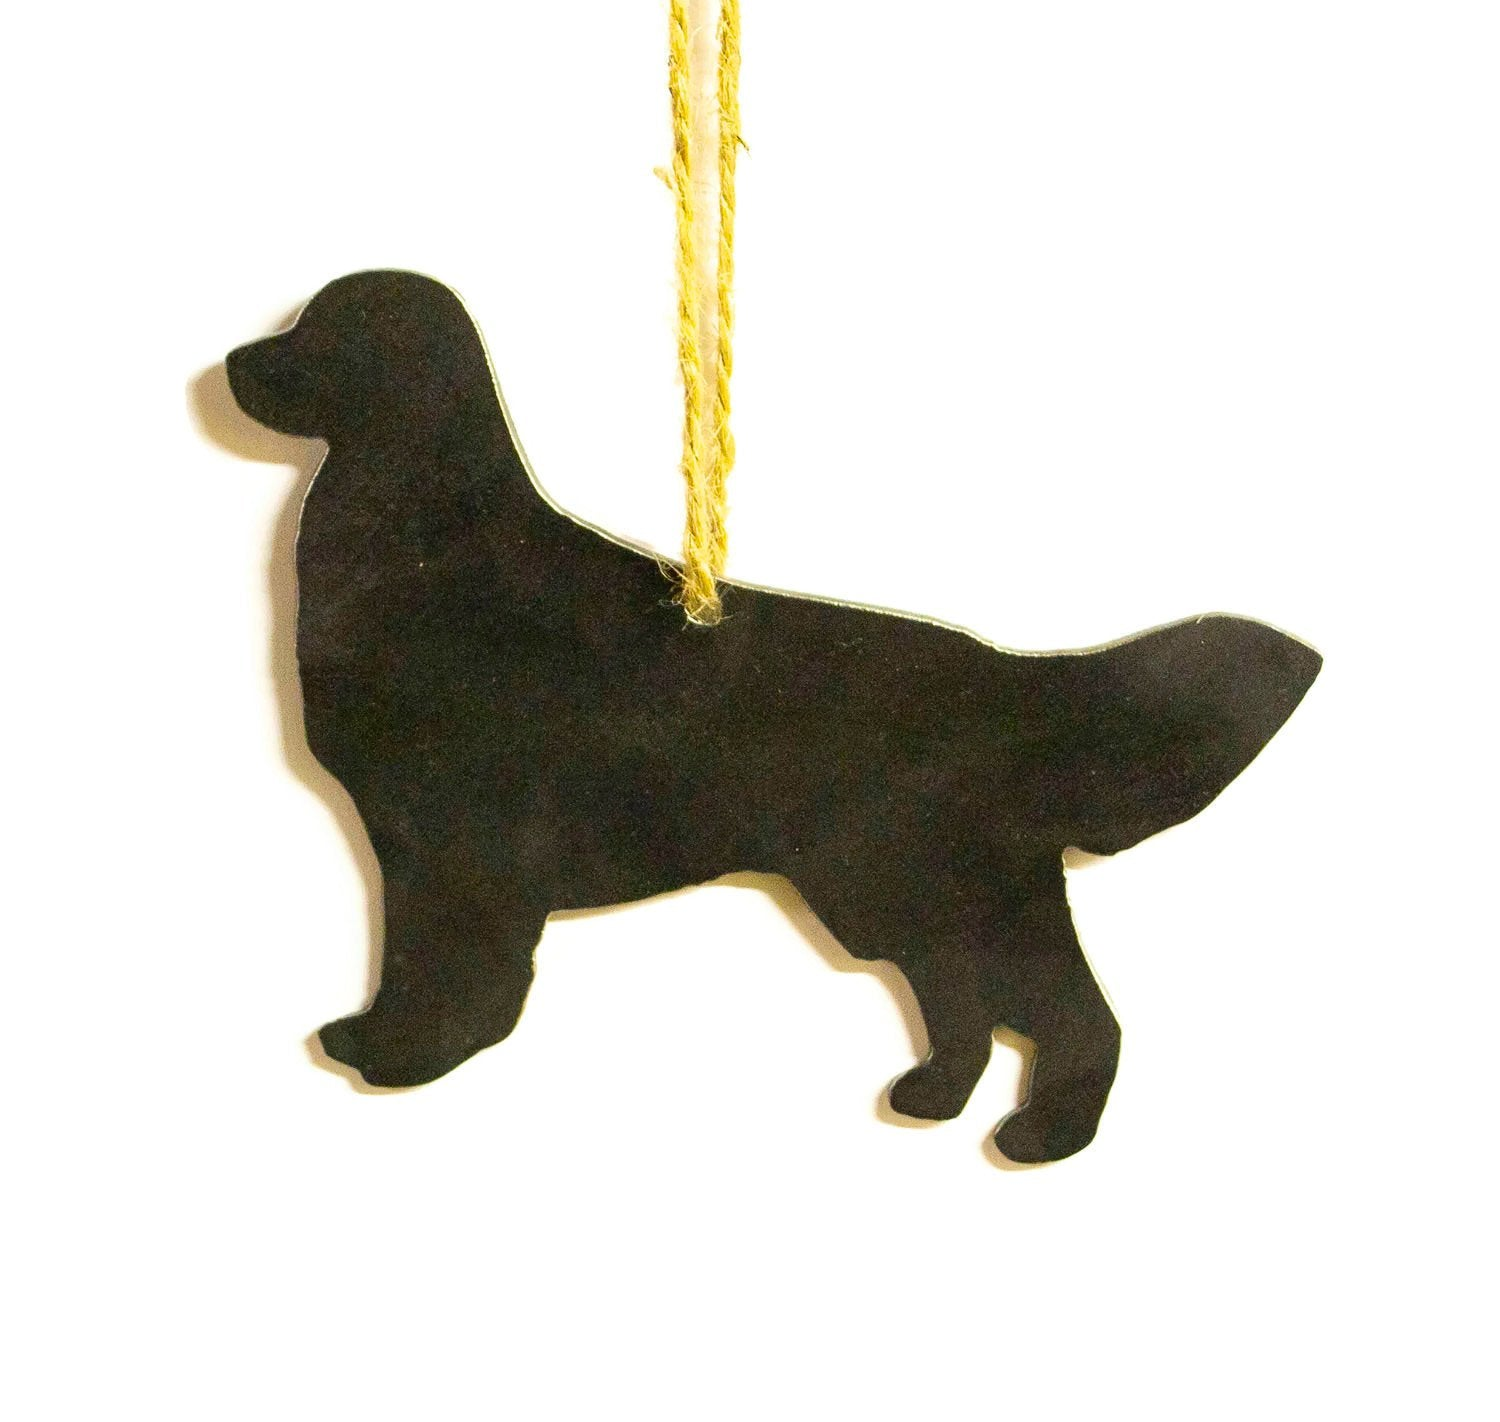 Golden Retriever Dog Metal Christmas Ornament Tree Stocking Stuffer Party Favor Holiday Decoration Raw Steel Gift Recycled Nature Home Decor